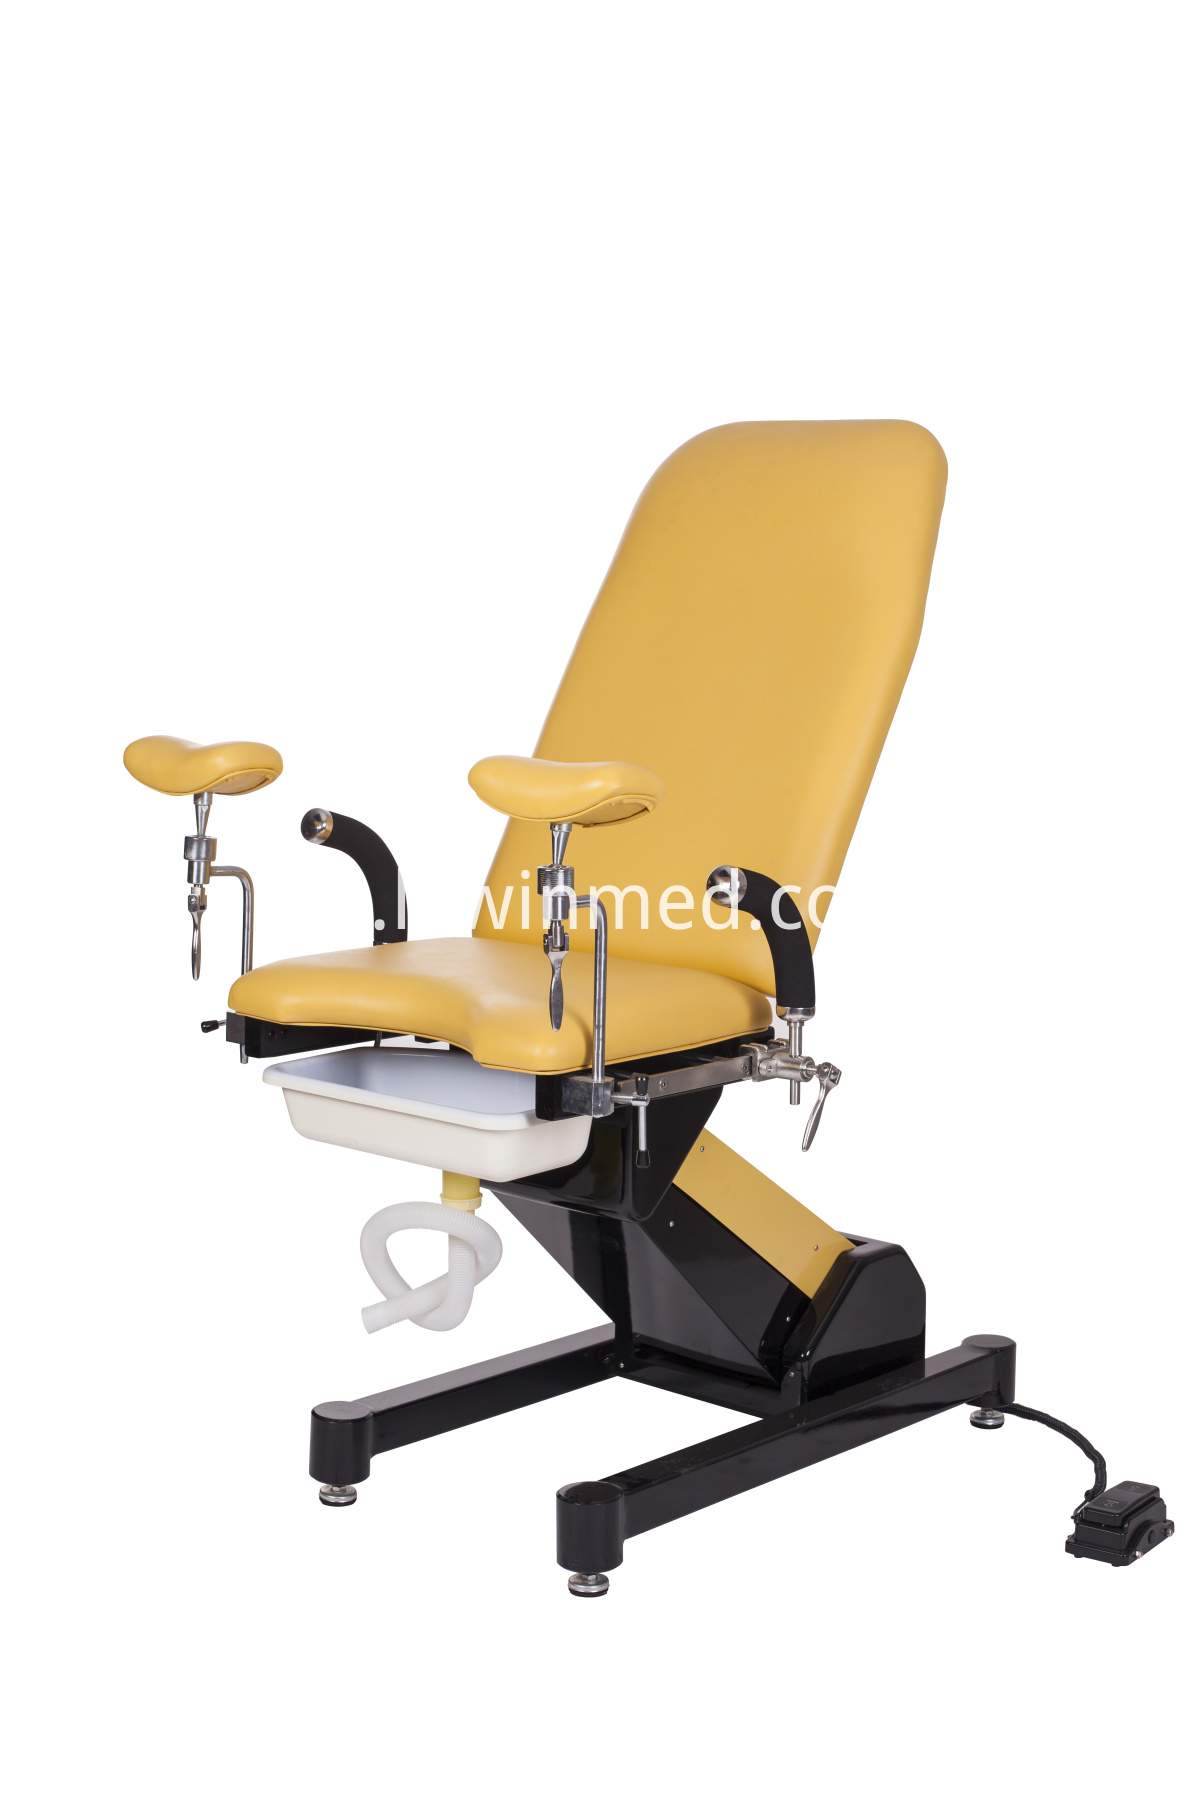 Electric gynecological examination bed